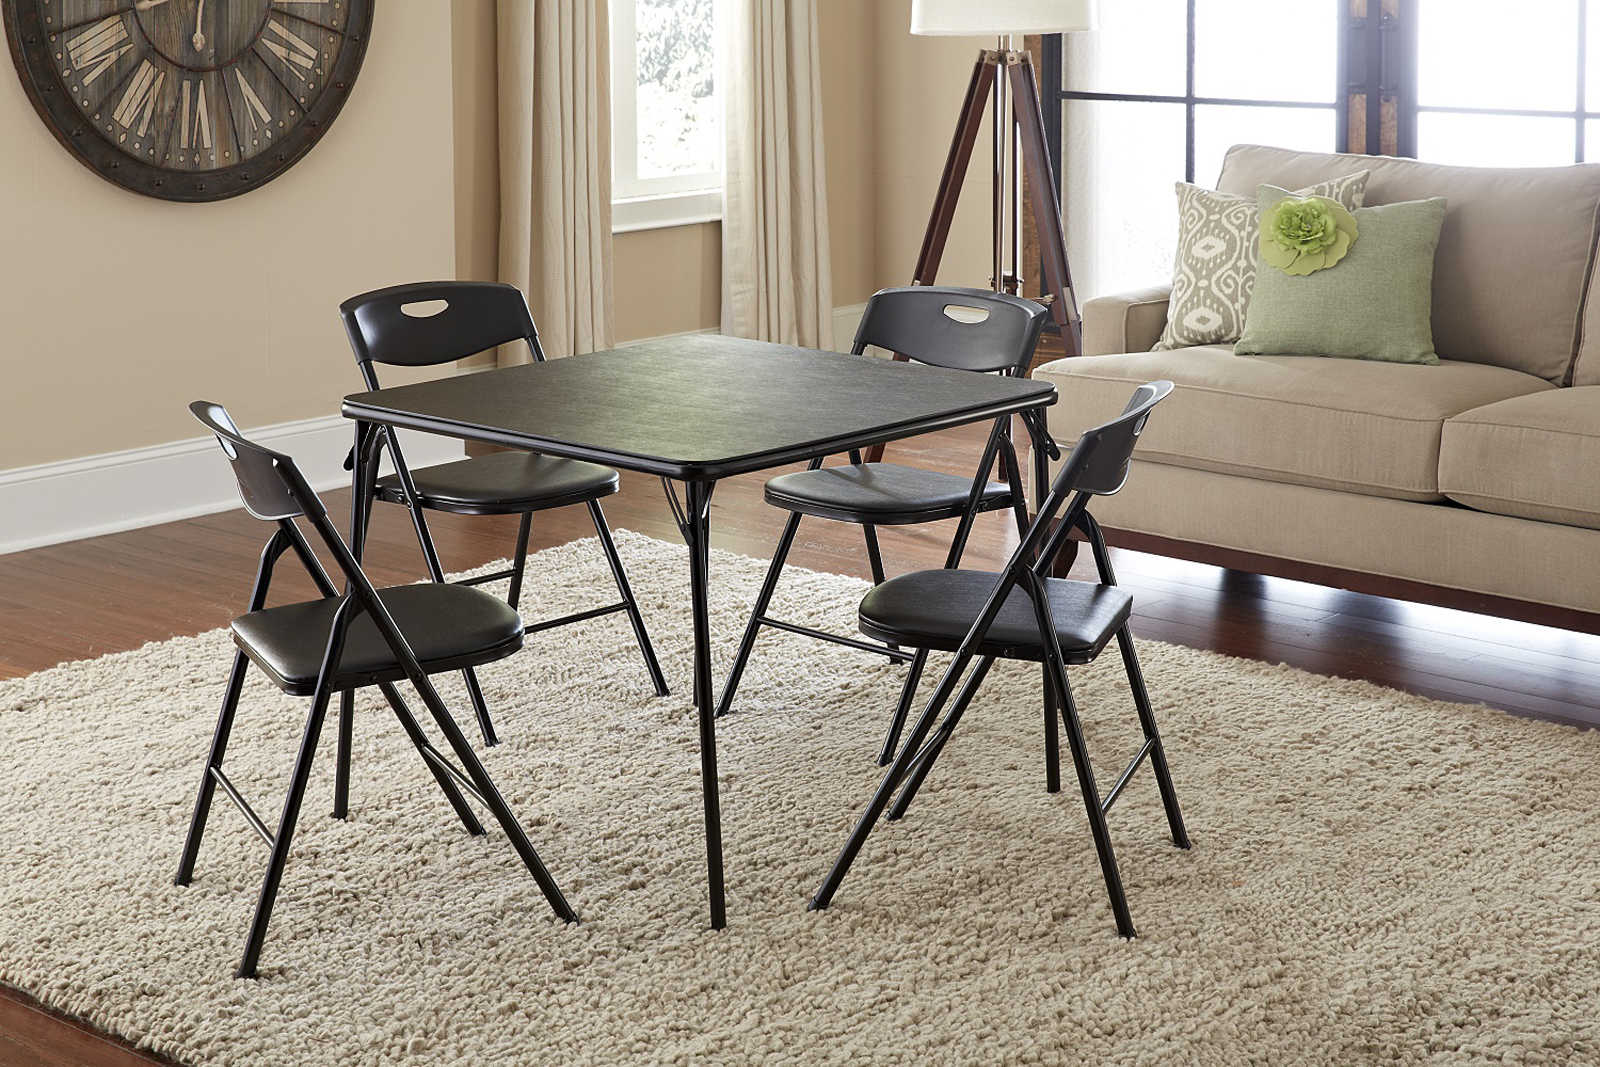 How to buy a folding table and chairs set